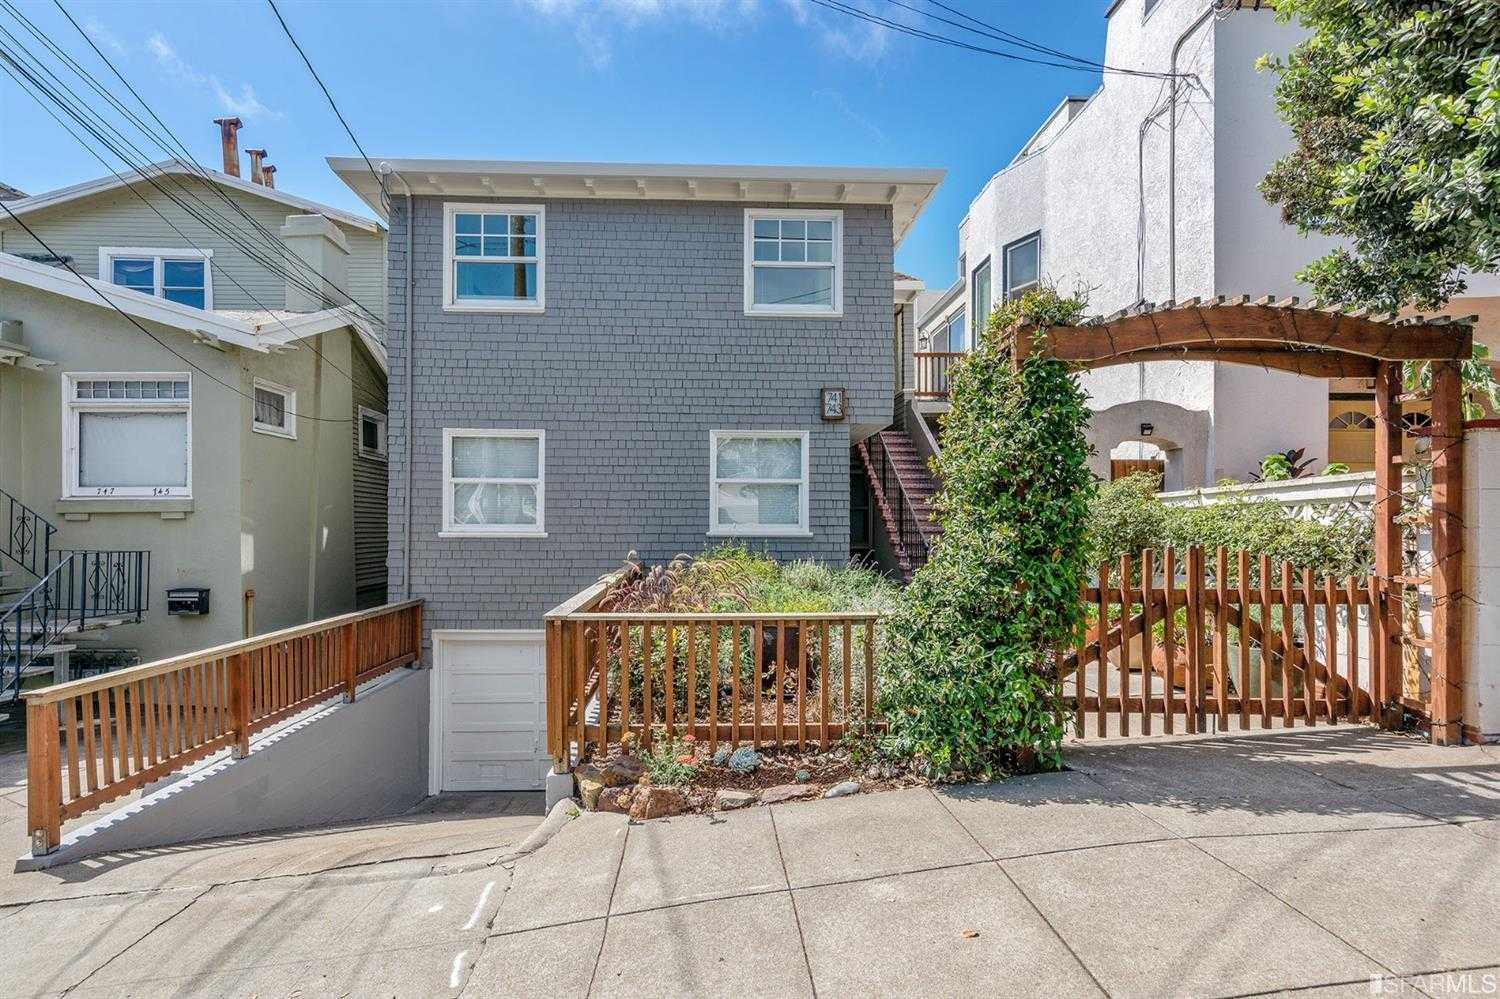 $1,029,000 - 2Br/1Ba -  for Sale in San Francisco